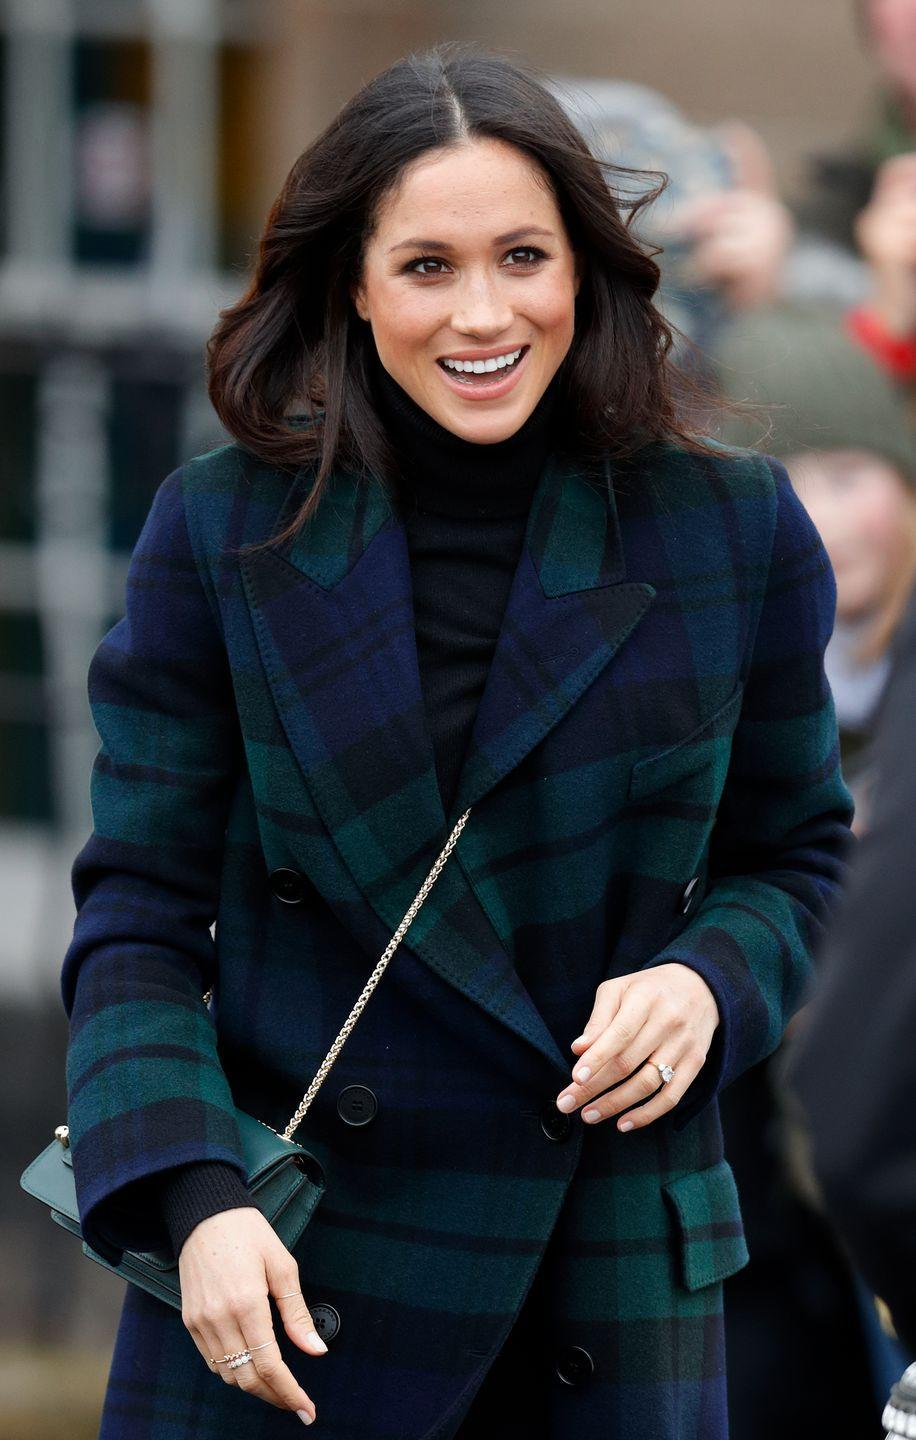 """<p>This might be an obvious one, but Meghan and Eugenie have reportedly become quite close since moving <a rel=""""nofollow noopener"""" href=""""https://www.townandcountrymag.com/society/tradition/a20111164/princess-eugenie-ivy-cottage-kensington-palace/"""" target=""""_blank"""" data-ylk=""""slk:next door"""" class=""""link rapid-noclick-resp"""">next door</a> to each other. It's safe to assume that she'll be at the celebration alongside her husband Prince Harry.</p>"""